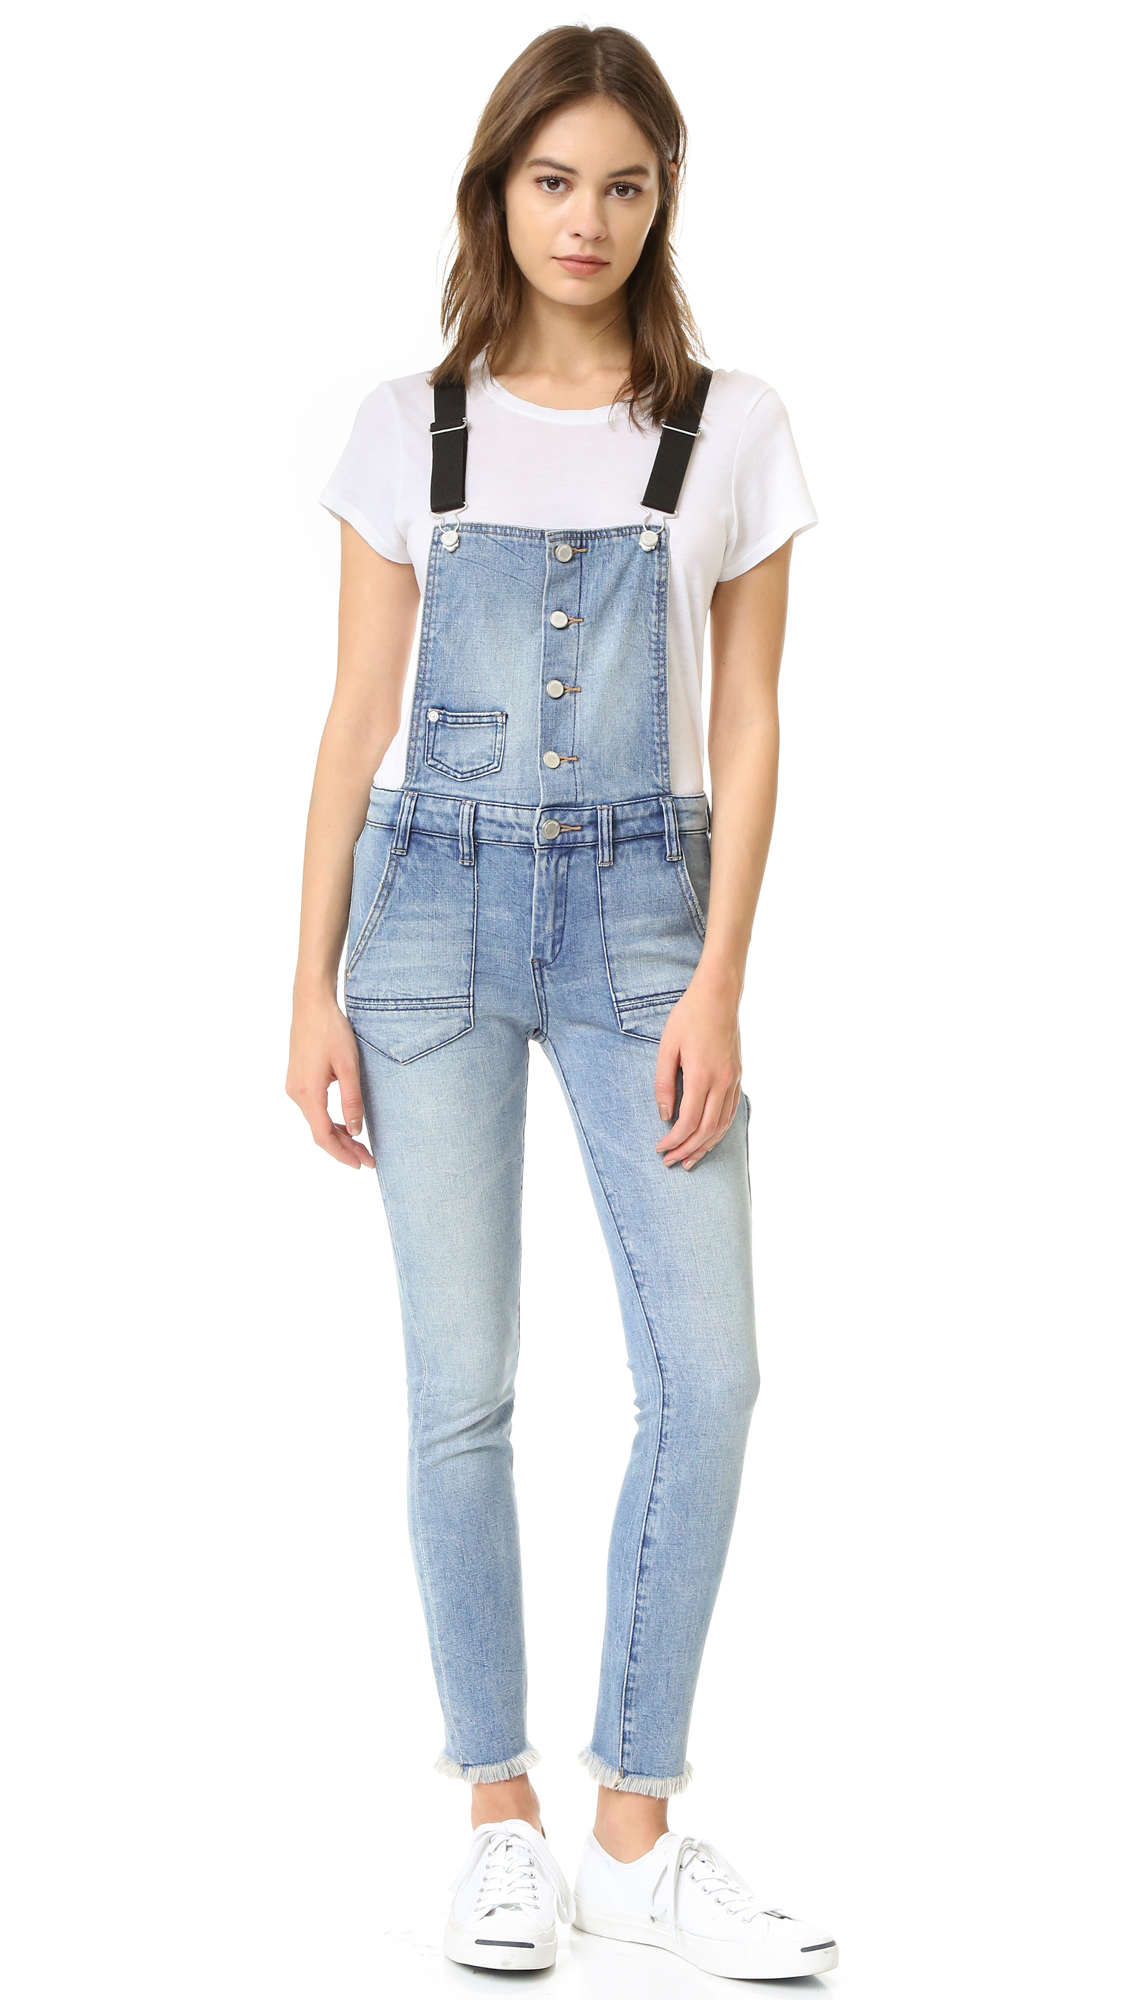 Suspender style buckle straps add a unique touch to these button up Blank Denim overalls. 4 pocket styling with hammer pouch. Zip fly. Raw hem. Fabric: Stretch denim. 98% cotton/2% elastane. Wash cold. Imported, China. Measurements Rise: 9.5in / 24